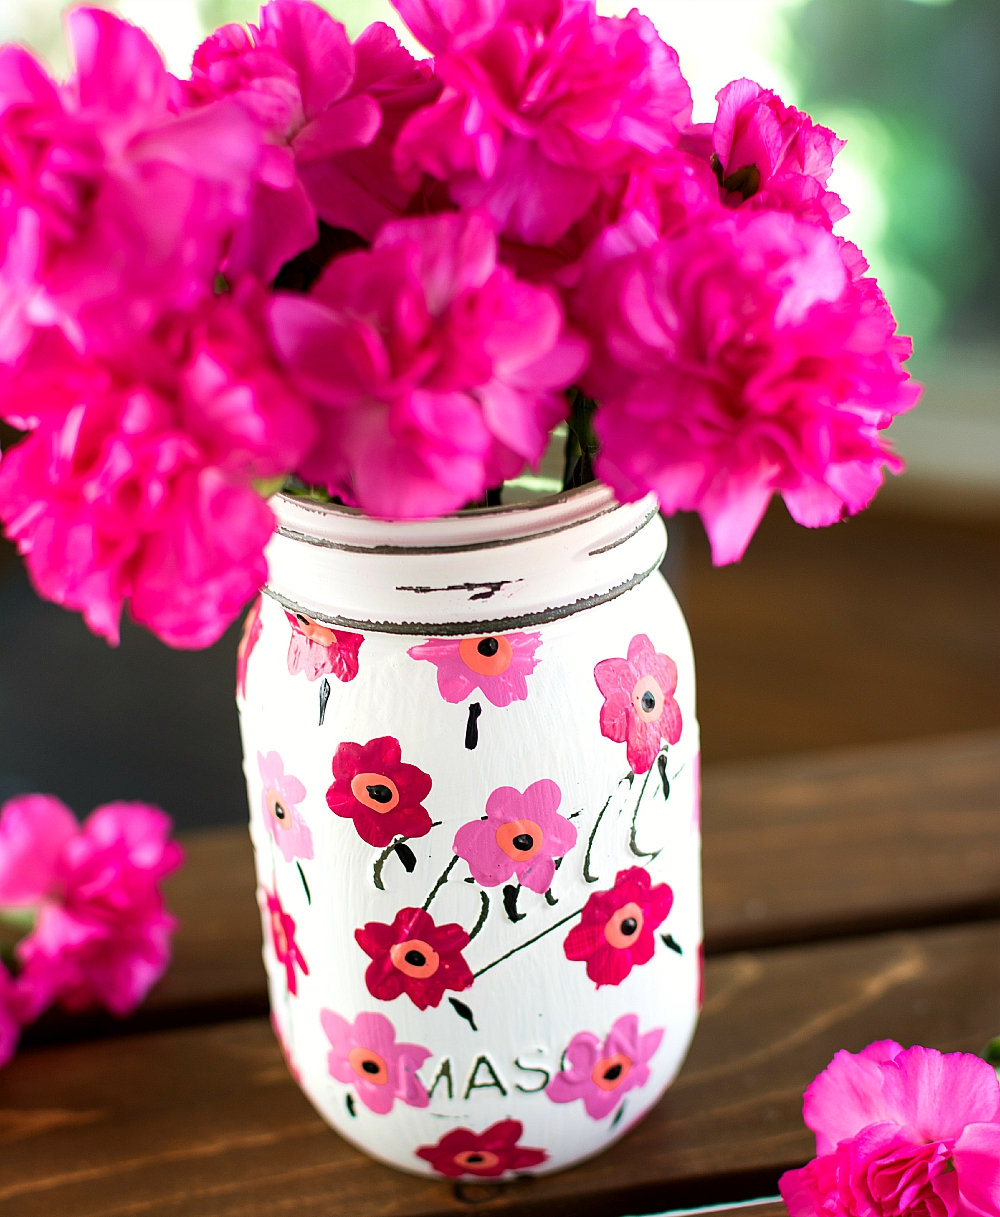 Painted Mason Jar - Flower Painted Mason Jar - Marimekko Pink Flower Mason Jar